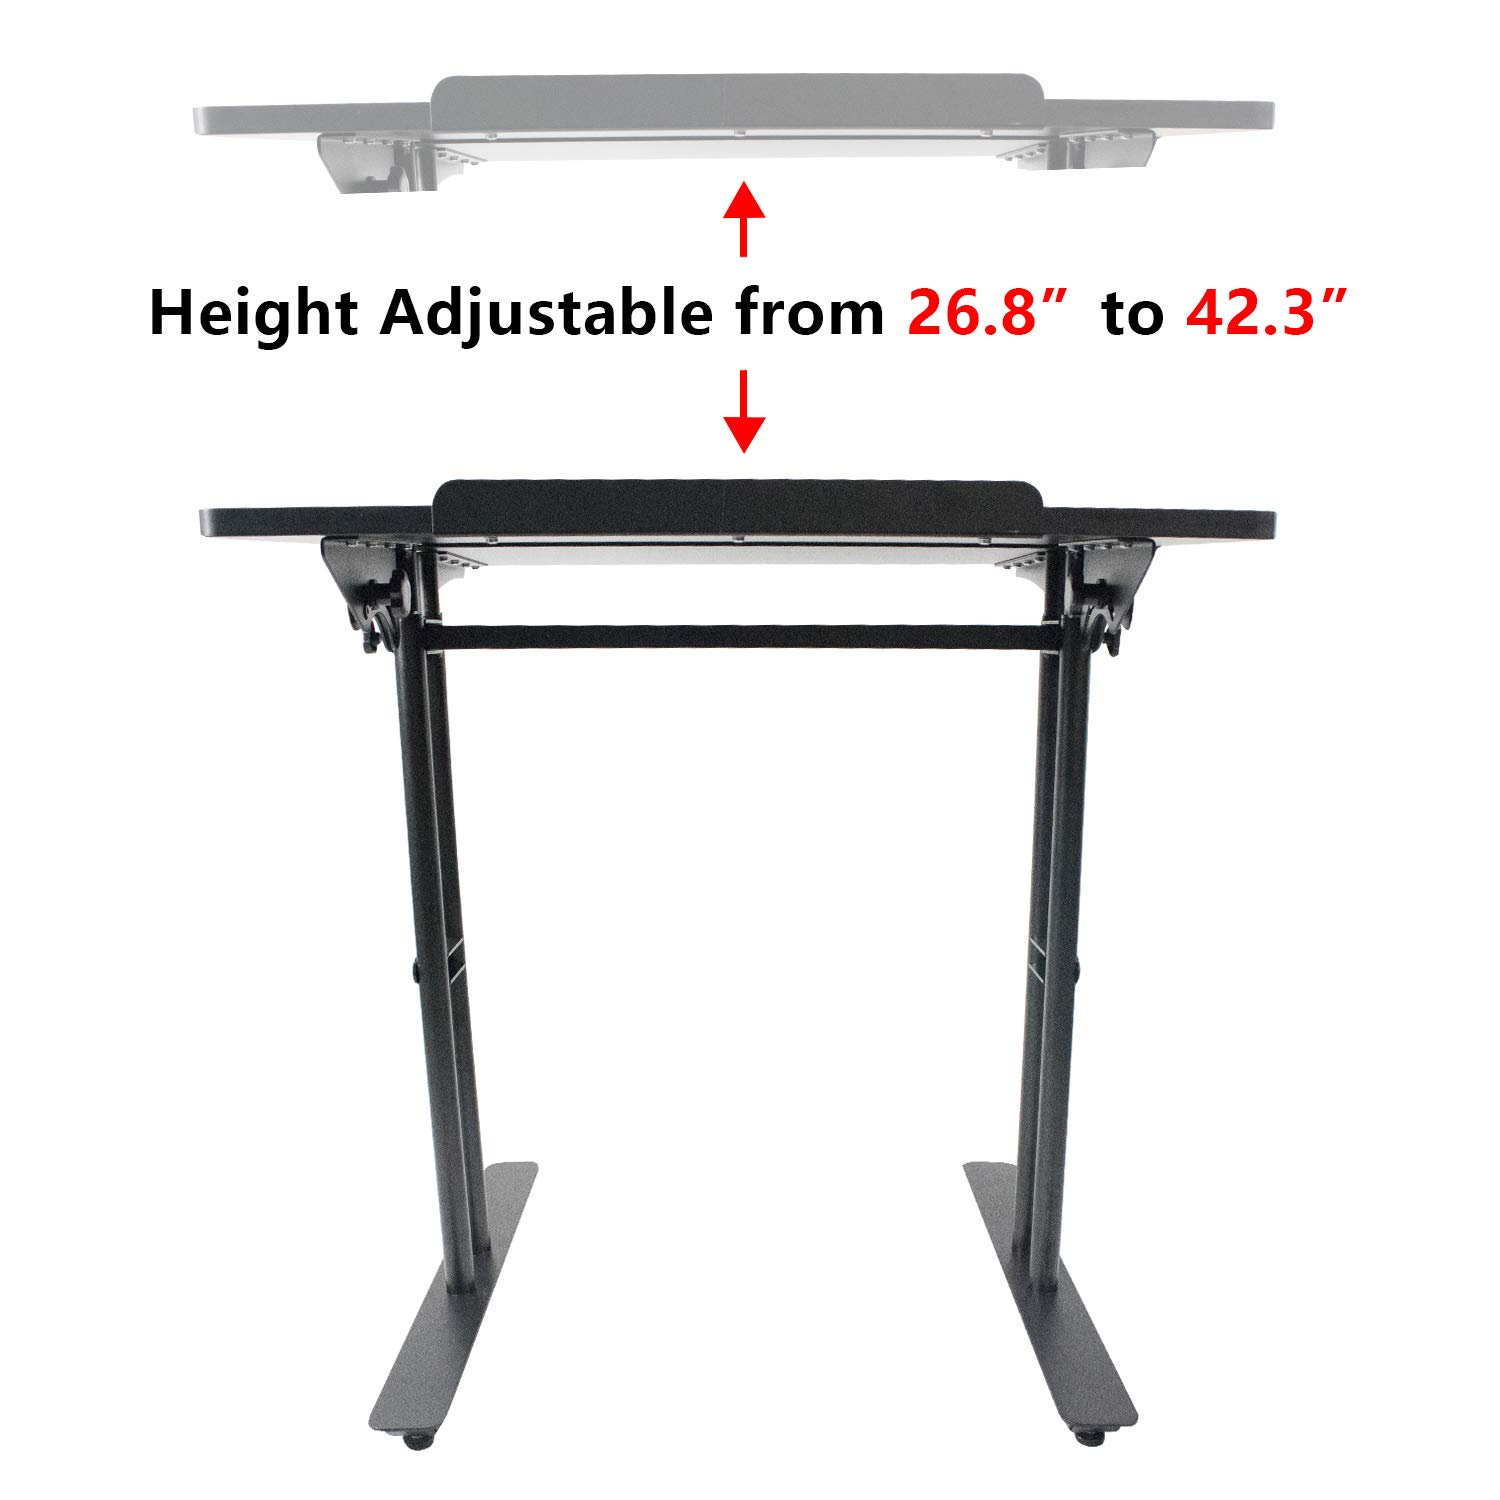 Heyesk Stand Up Desk Height Adjustable Home Office Desk with Standing (Black) by heyesk (Image #5)